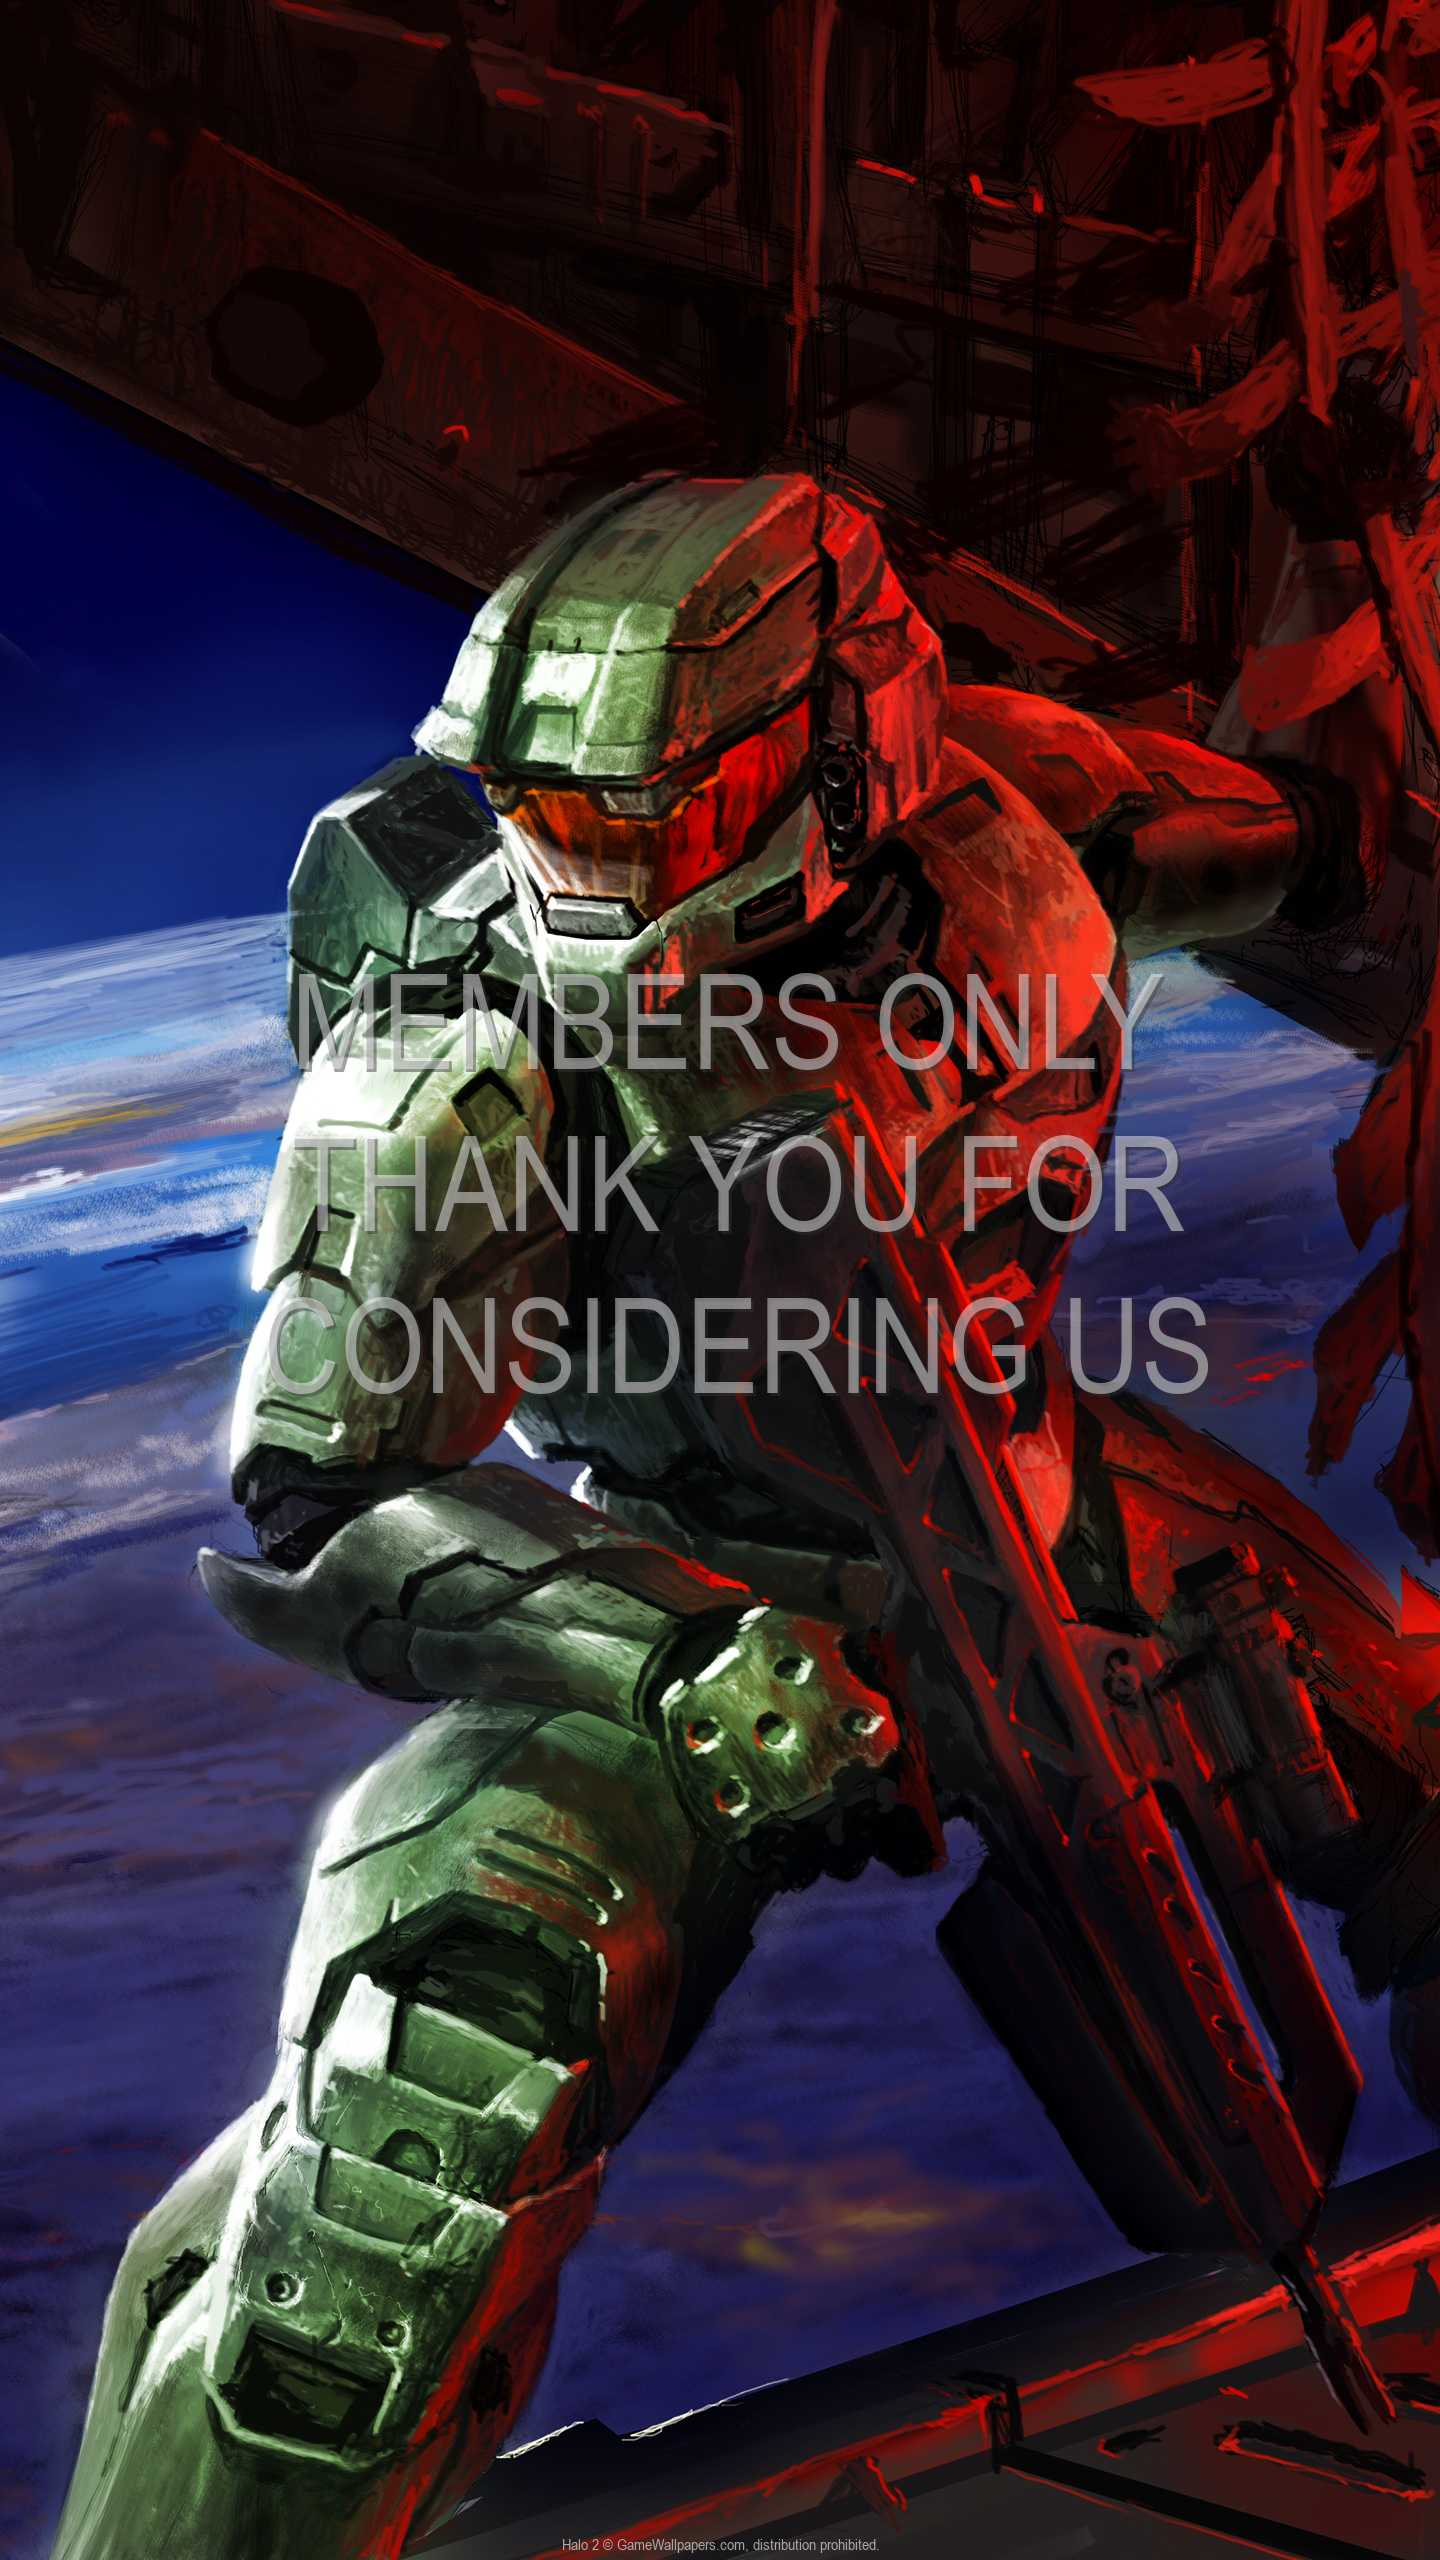 Halo 2 1440p Vertical Mobile wallpaper or background 18